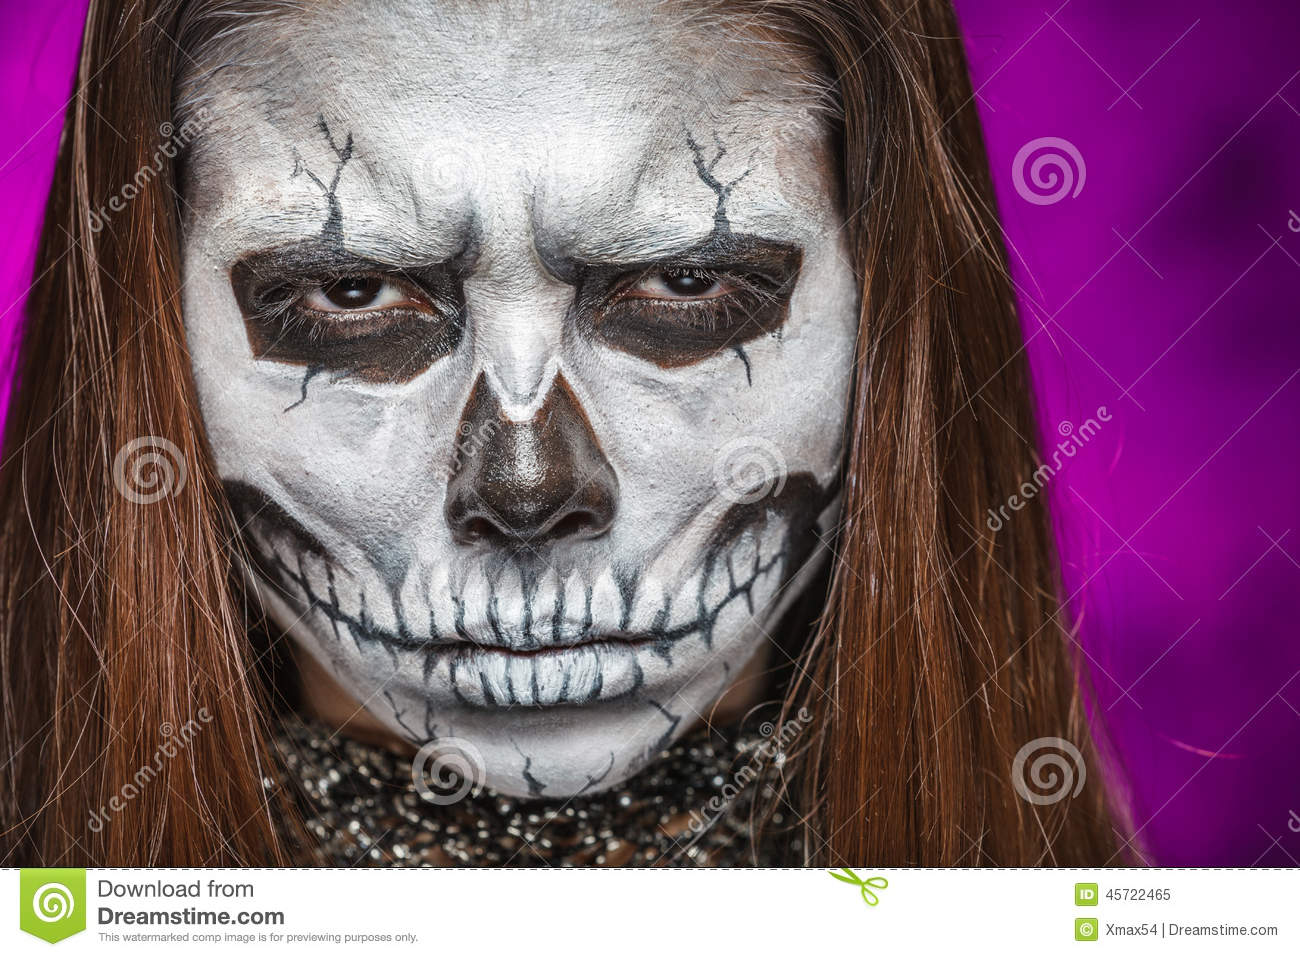 download young woman in day of the dead mask skull face art stock image